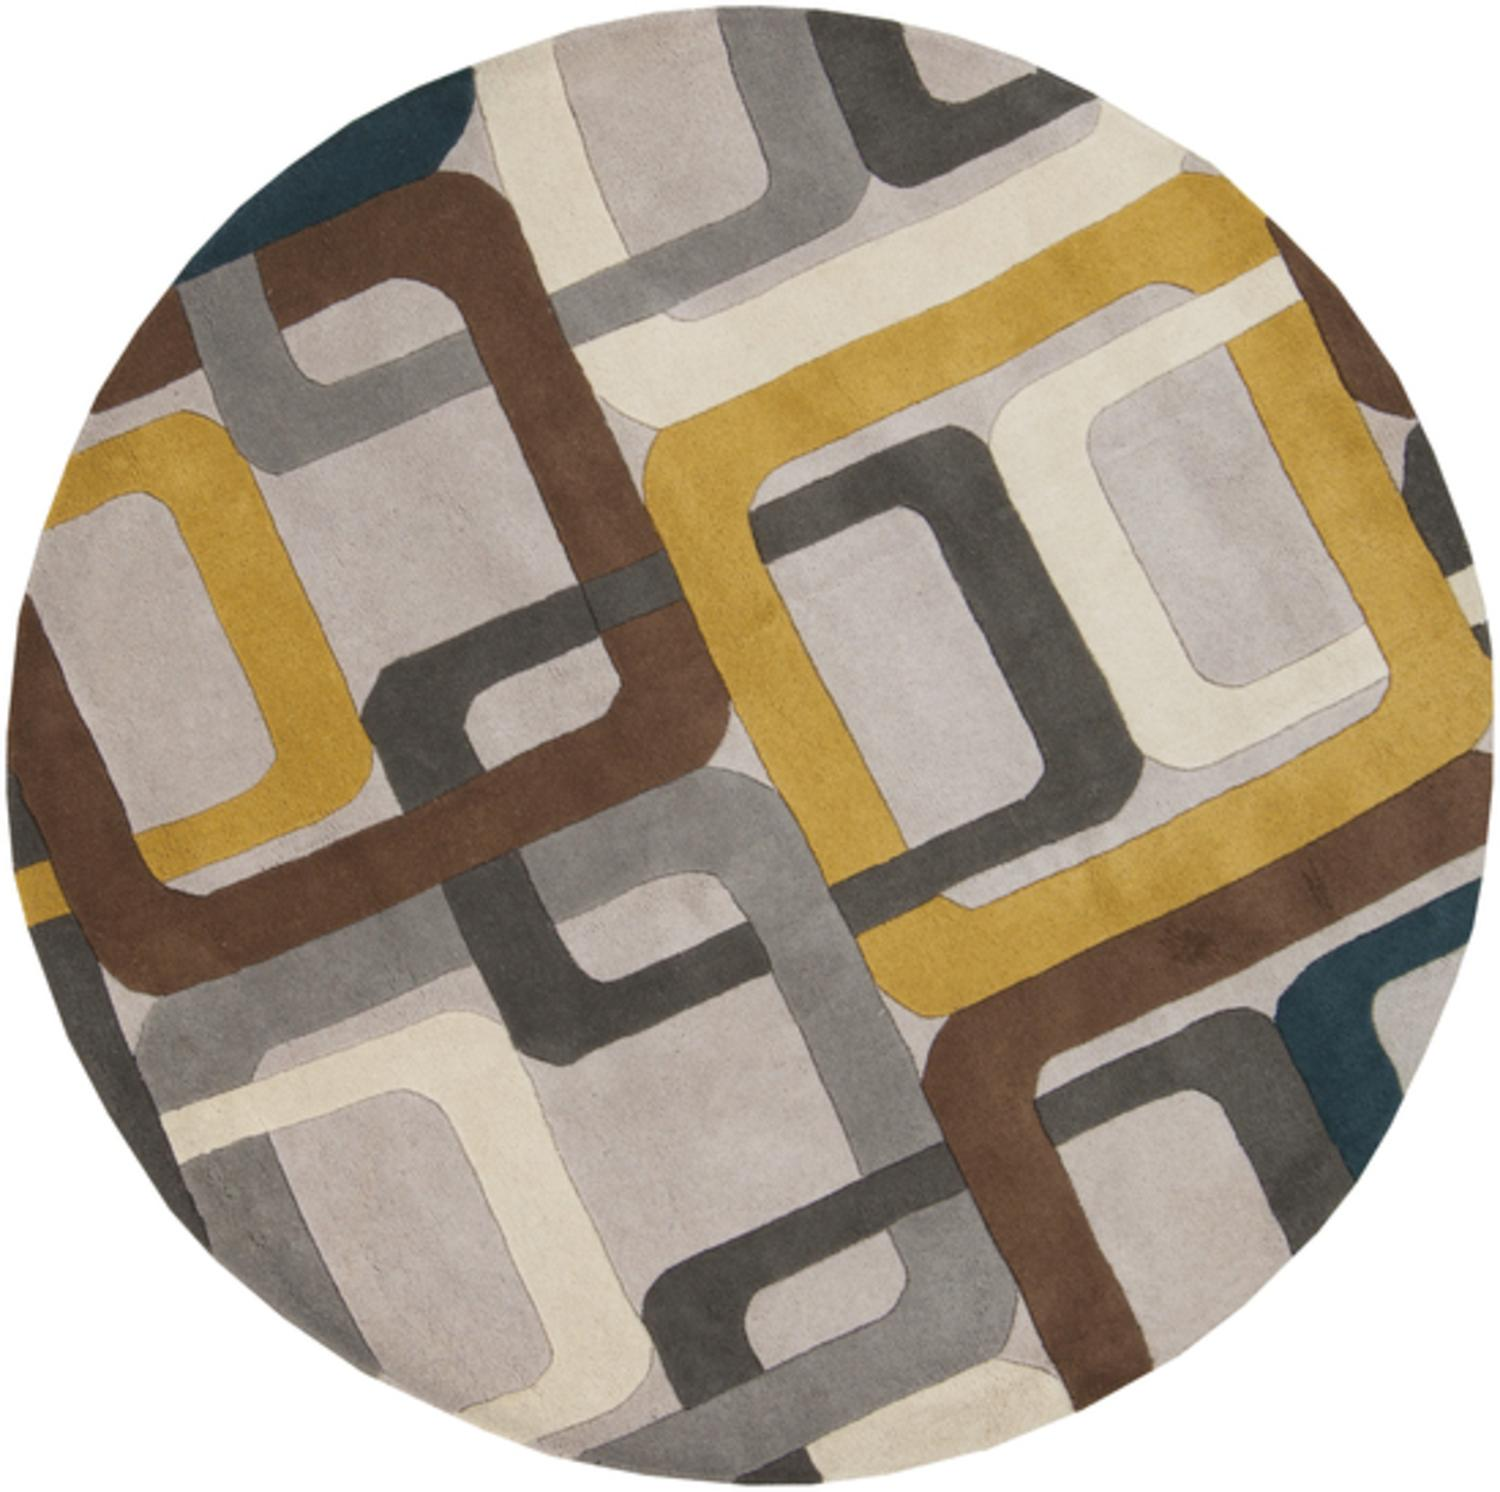 6' Soporific Squircle Gray, White and Teal Blue Hand Tufted Round Wool Area Rug